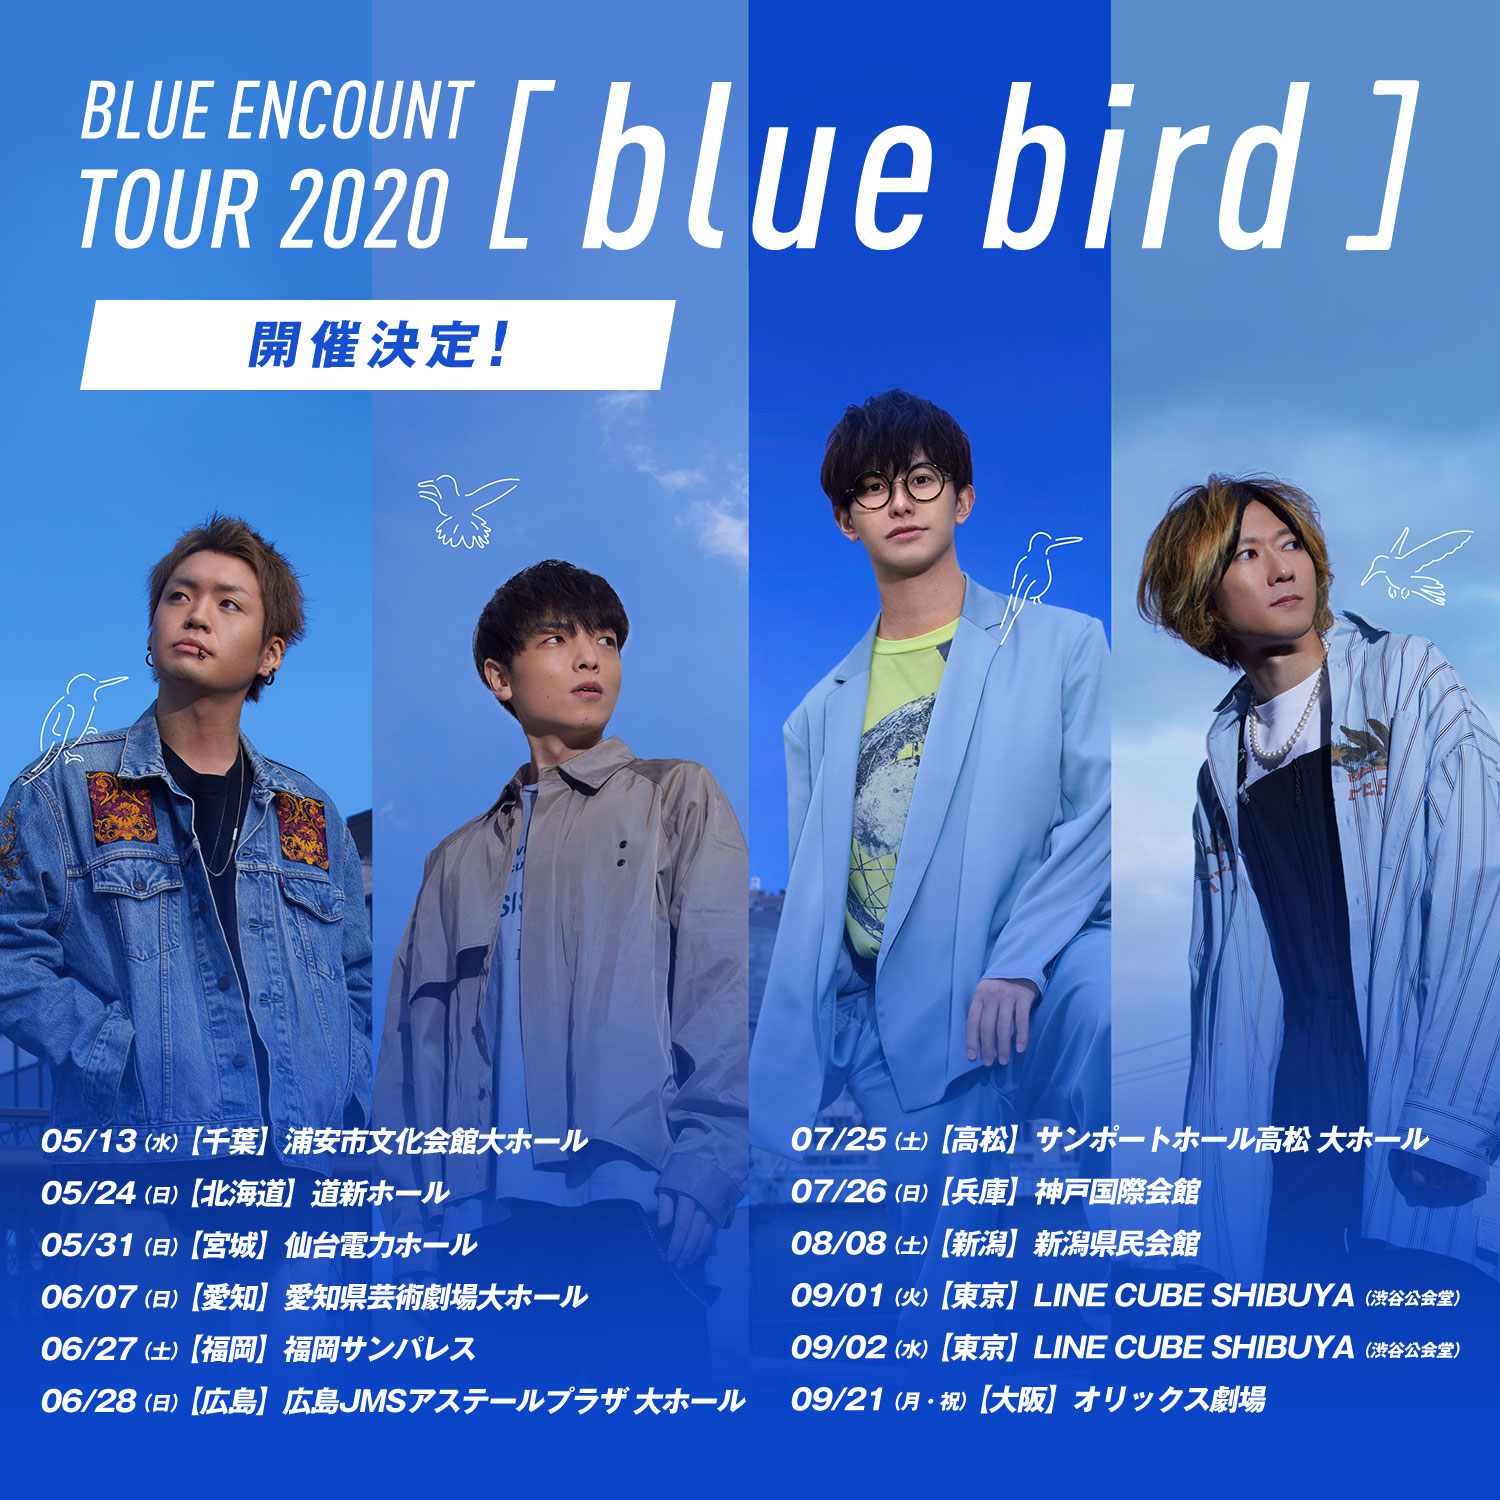 BLUE ENCOUNT TOUR2020 blue bird